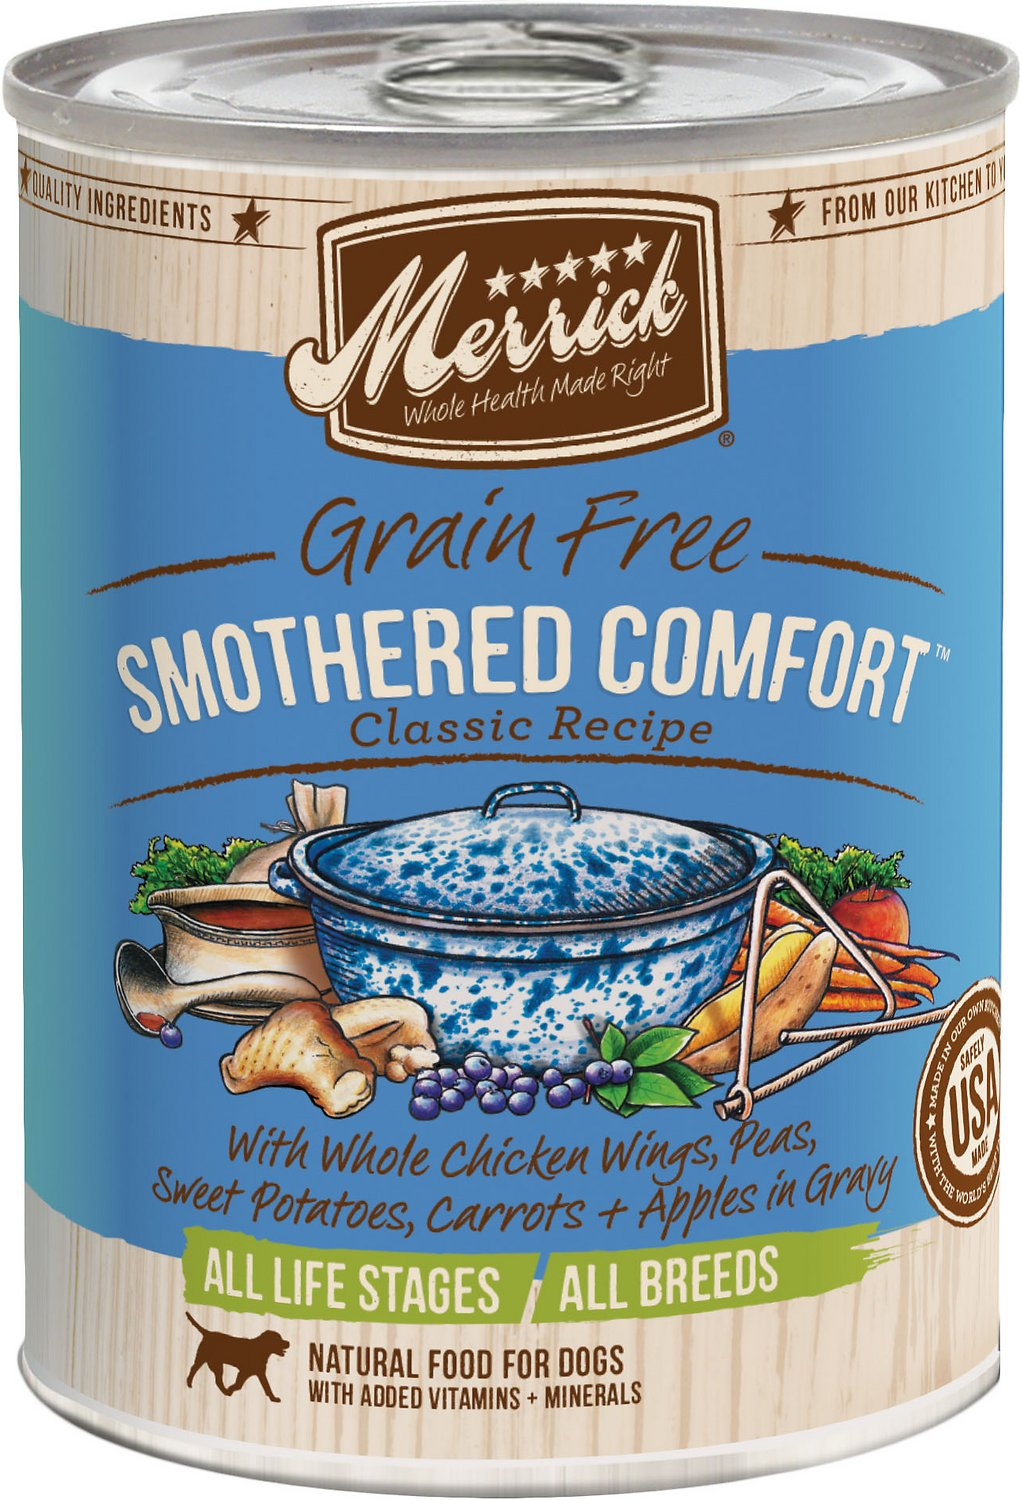 Merrick Grain-Free Smothered Comfort Canned Dog Food, 13.2-oz